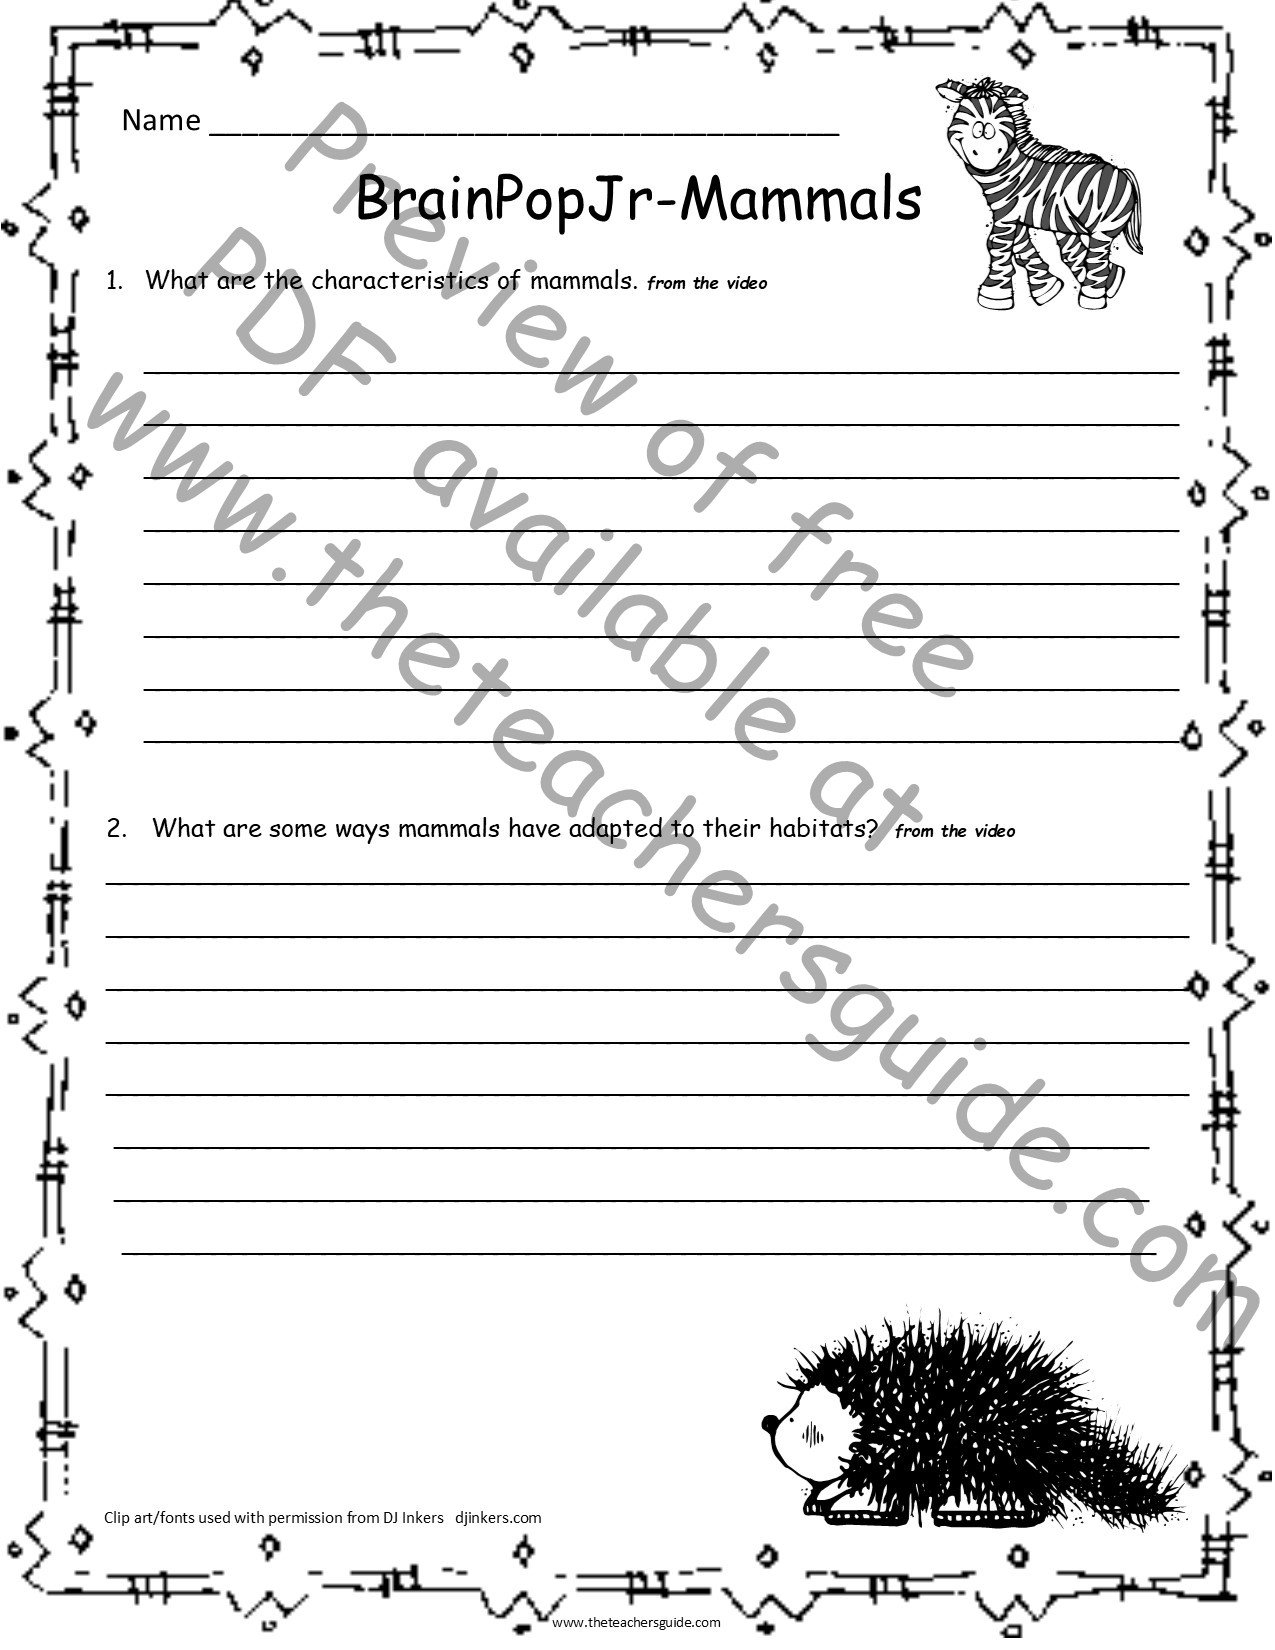 Mammal Worksheets First Grade the Teacher Guide Free Lesson Plans Printouts and Resources